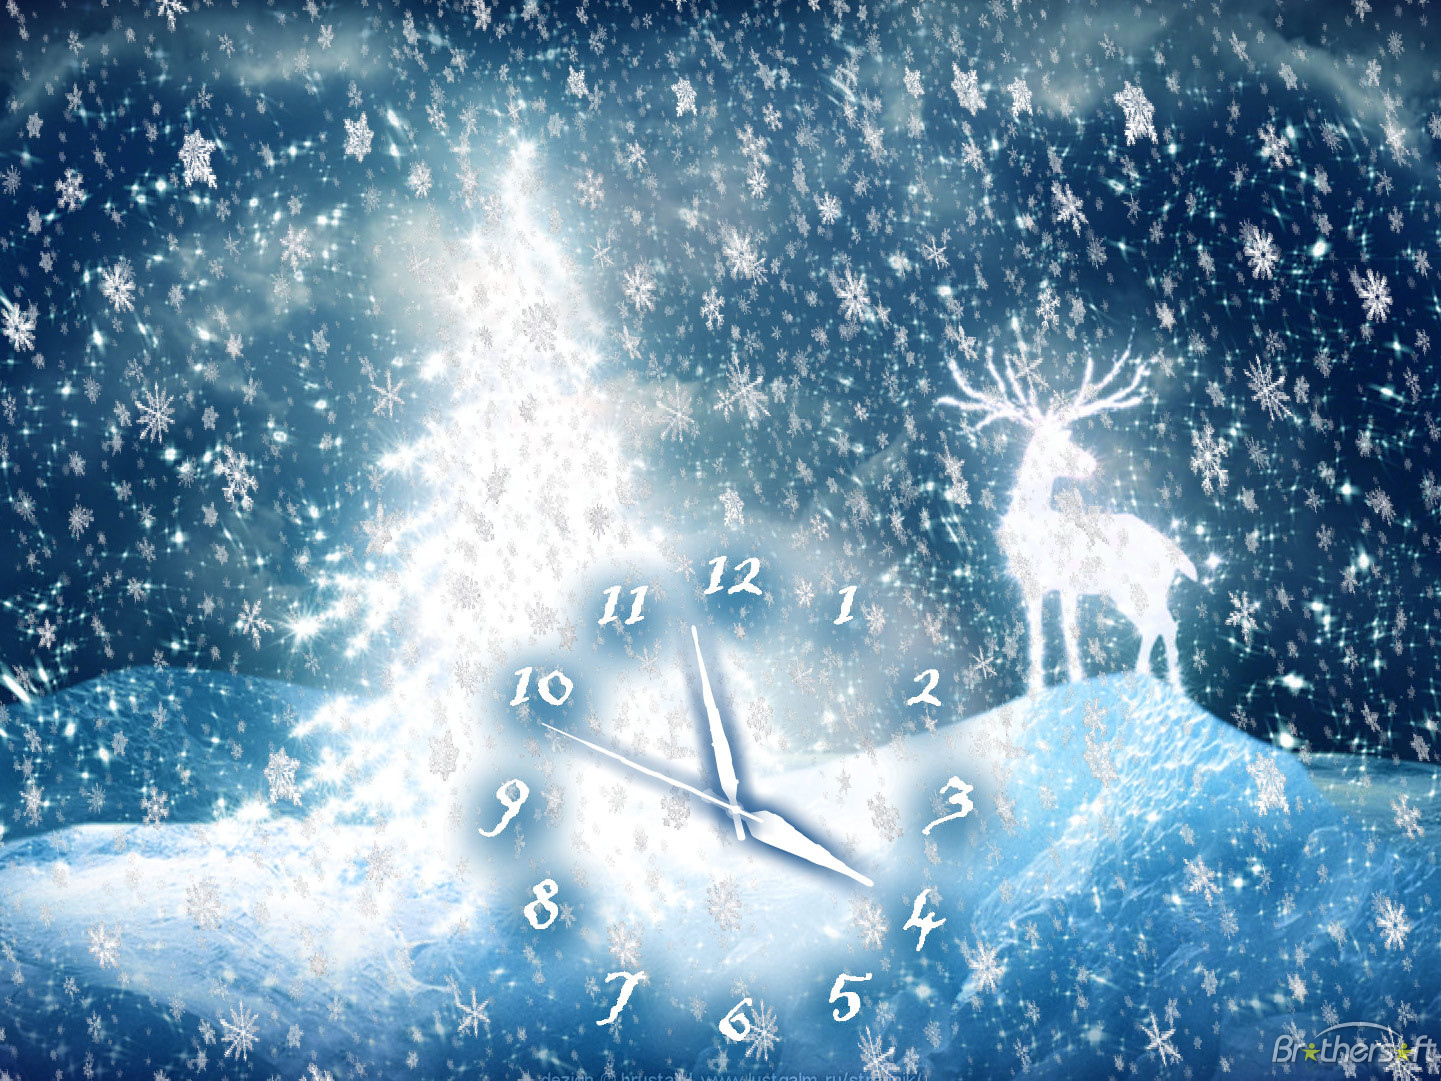 Christmas Deer Clock Screensaver Christmas Deer Clock Screensaver 31 1441x1081